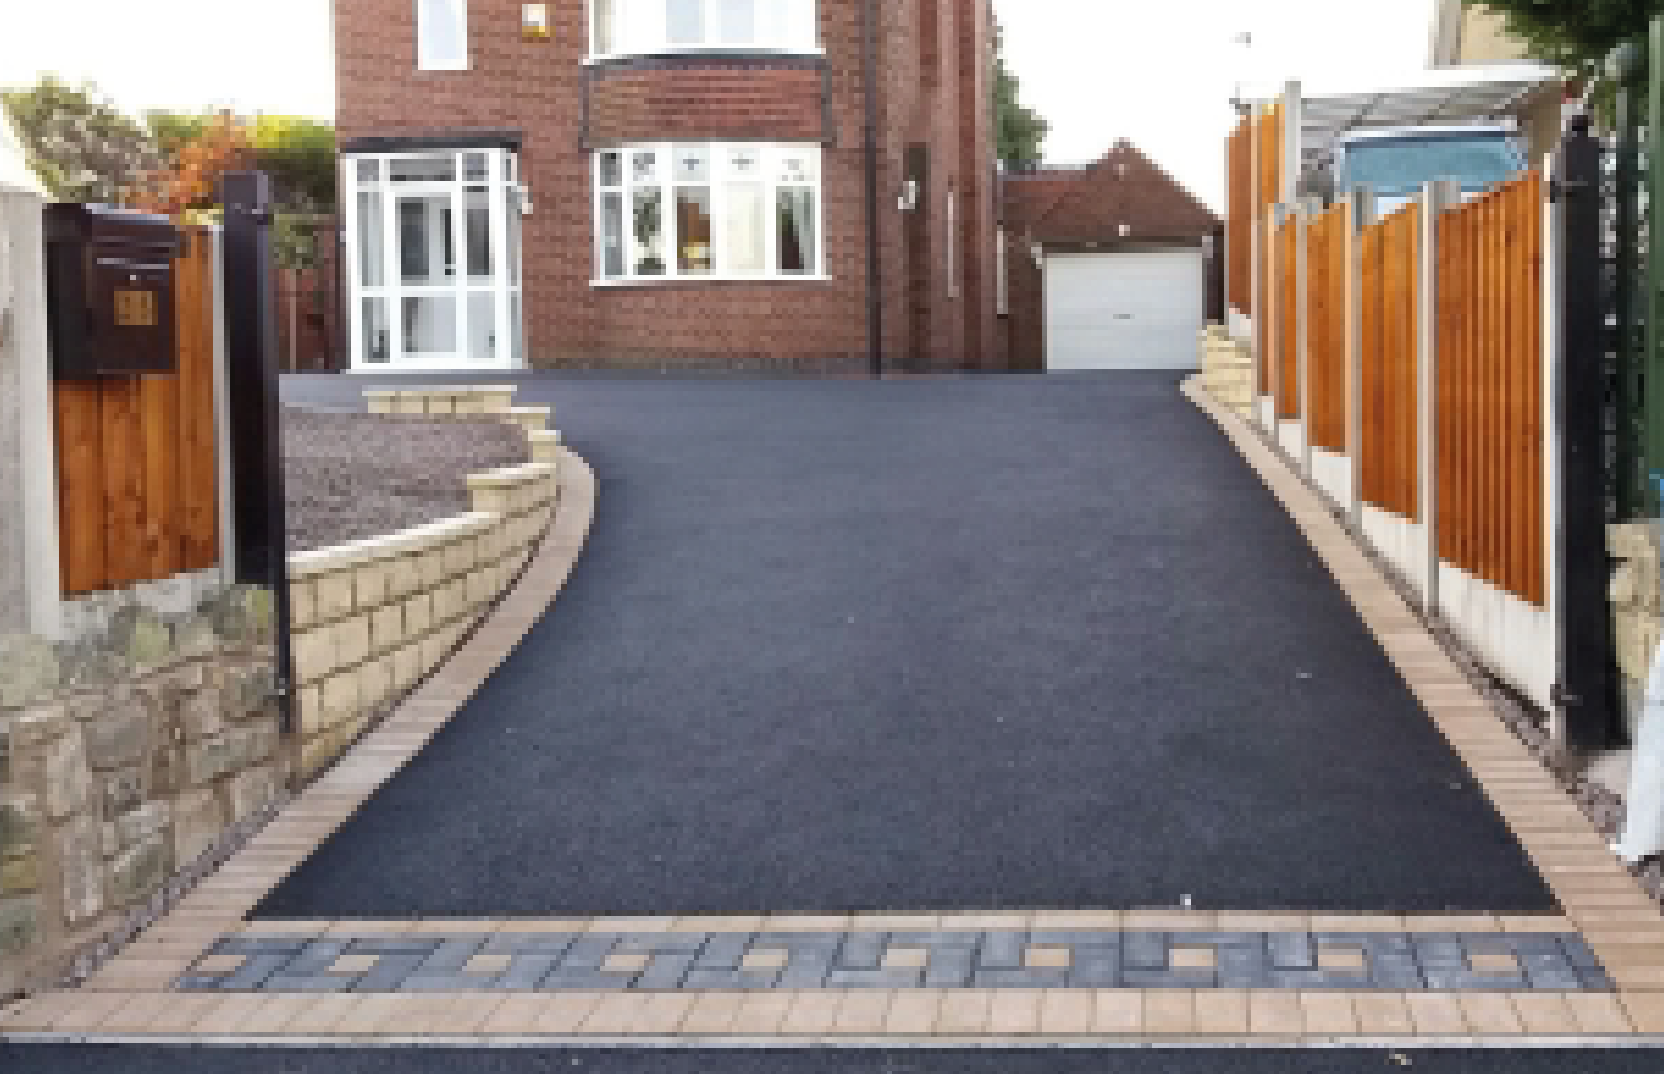 The Tarmac trend is steadily rising largely due to the exceeding amount of benefits it provides for your outdoor space. From being a quick fix in the efficient installation process to the impermeable layer it provides, the low cost and easily maintainable feature could be the perfect addition to your garden and drive.